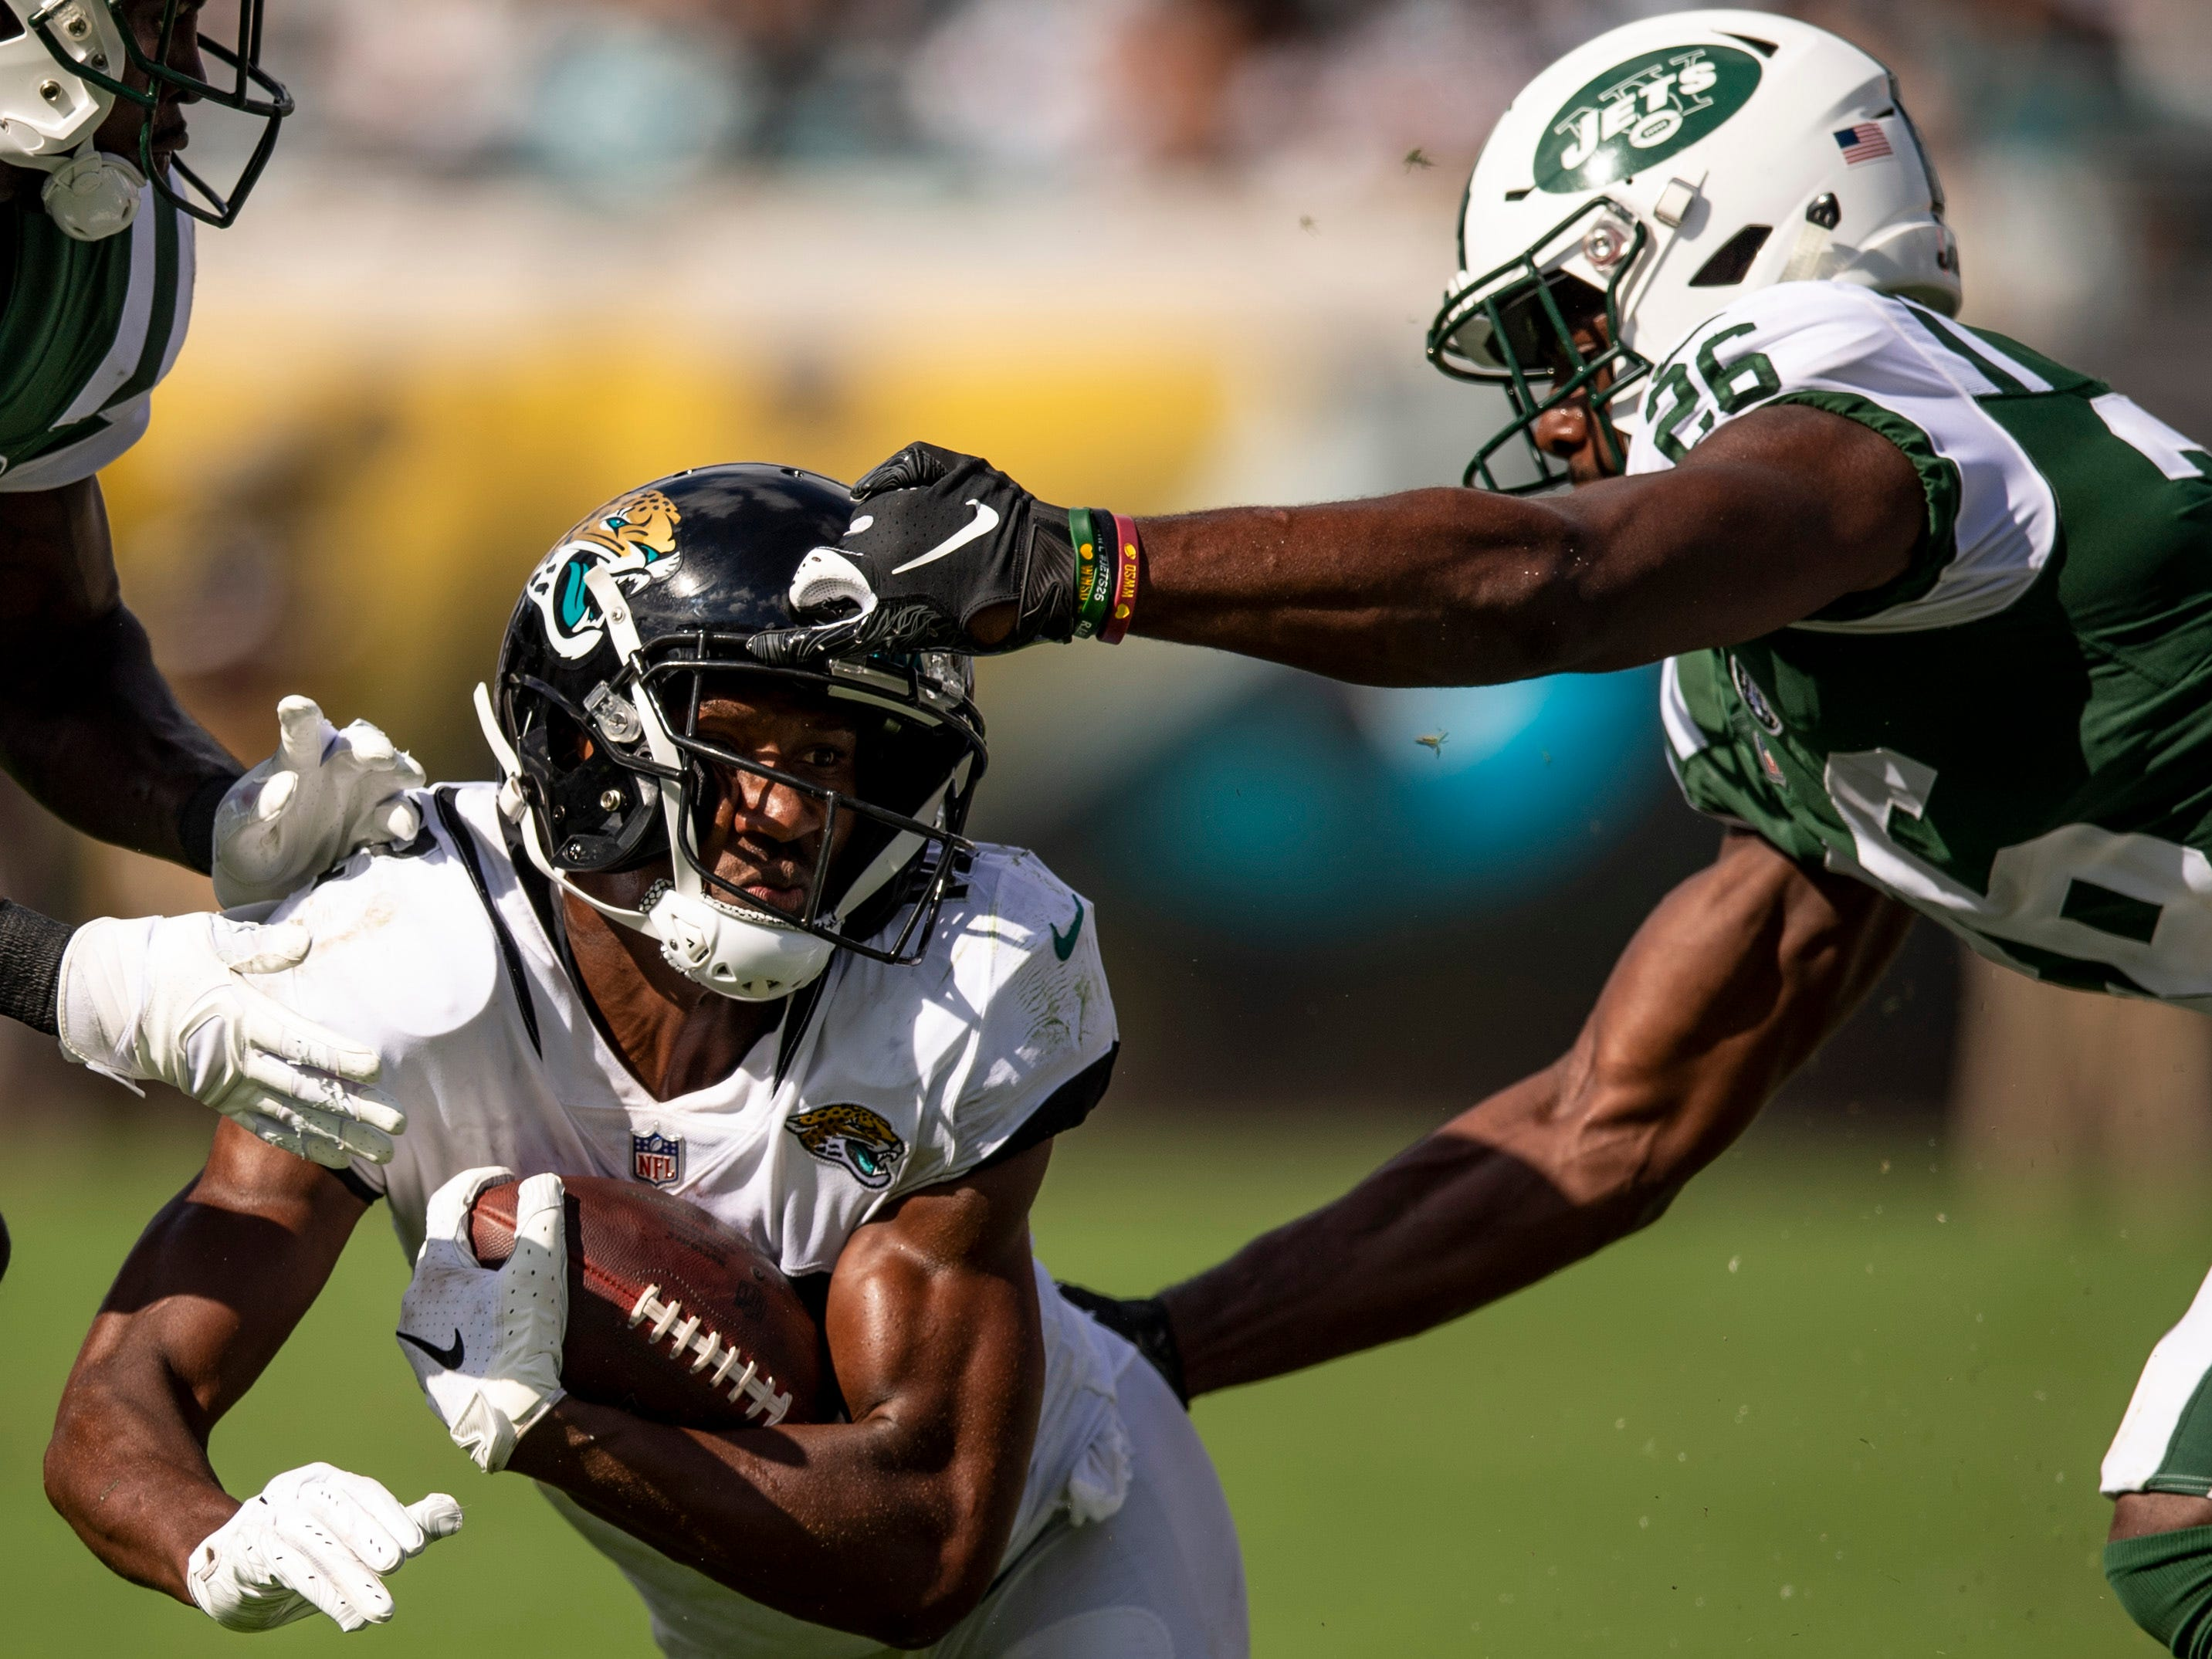 Jacksonville Jaguars wide receiver Dede Westbrook is tackled by New York Jets safety Marcus Maye during the second half at TIAA Bank Field.